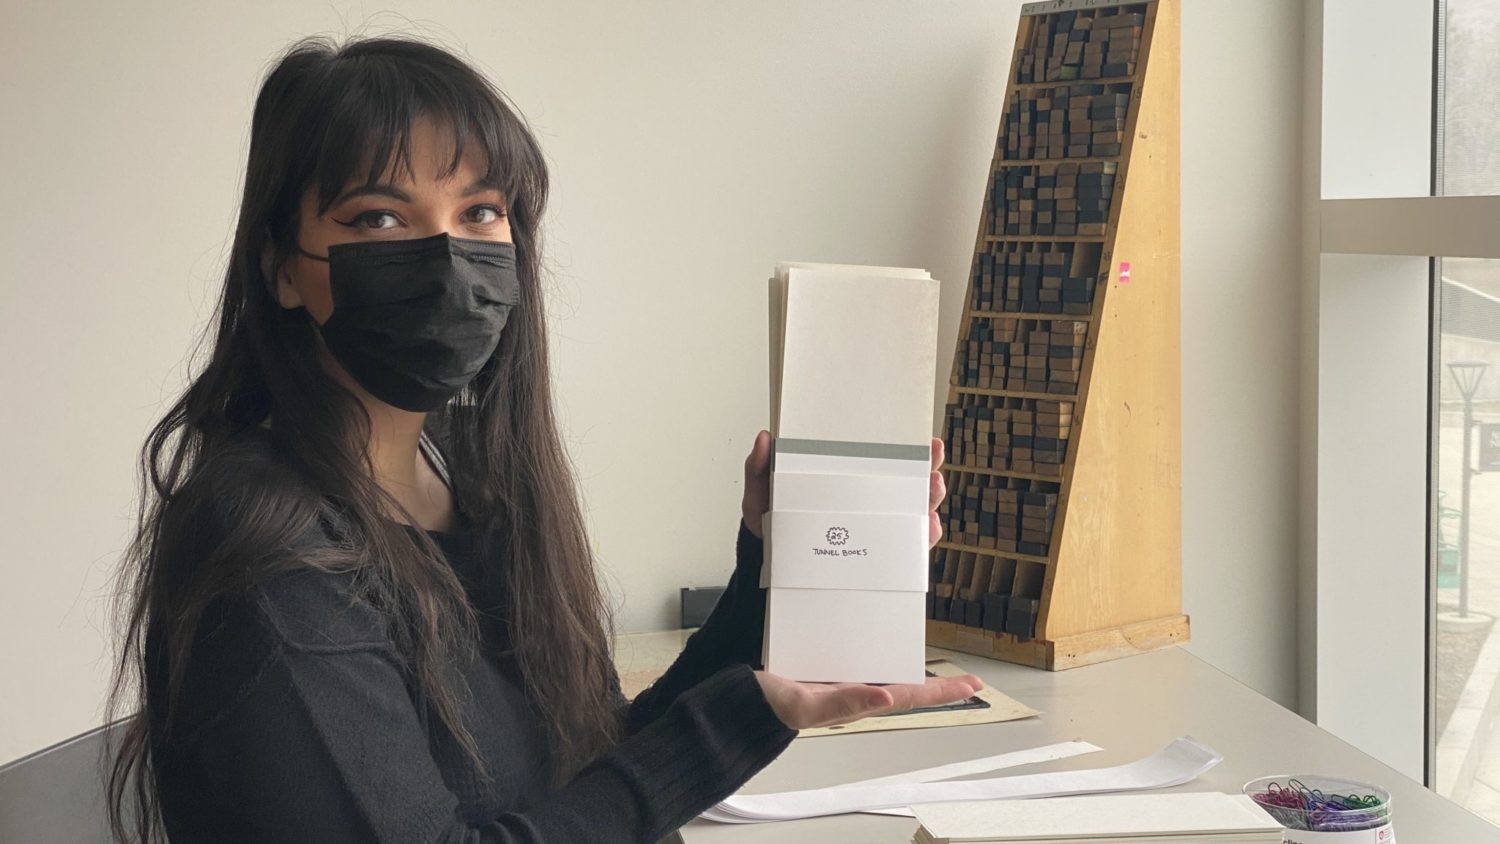 Victoria Dennis holding one of the packets she assembles for the Book Arts community programming.